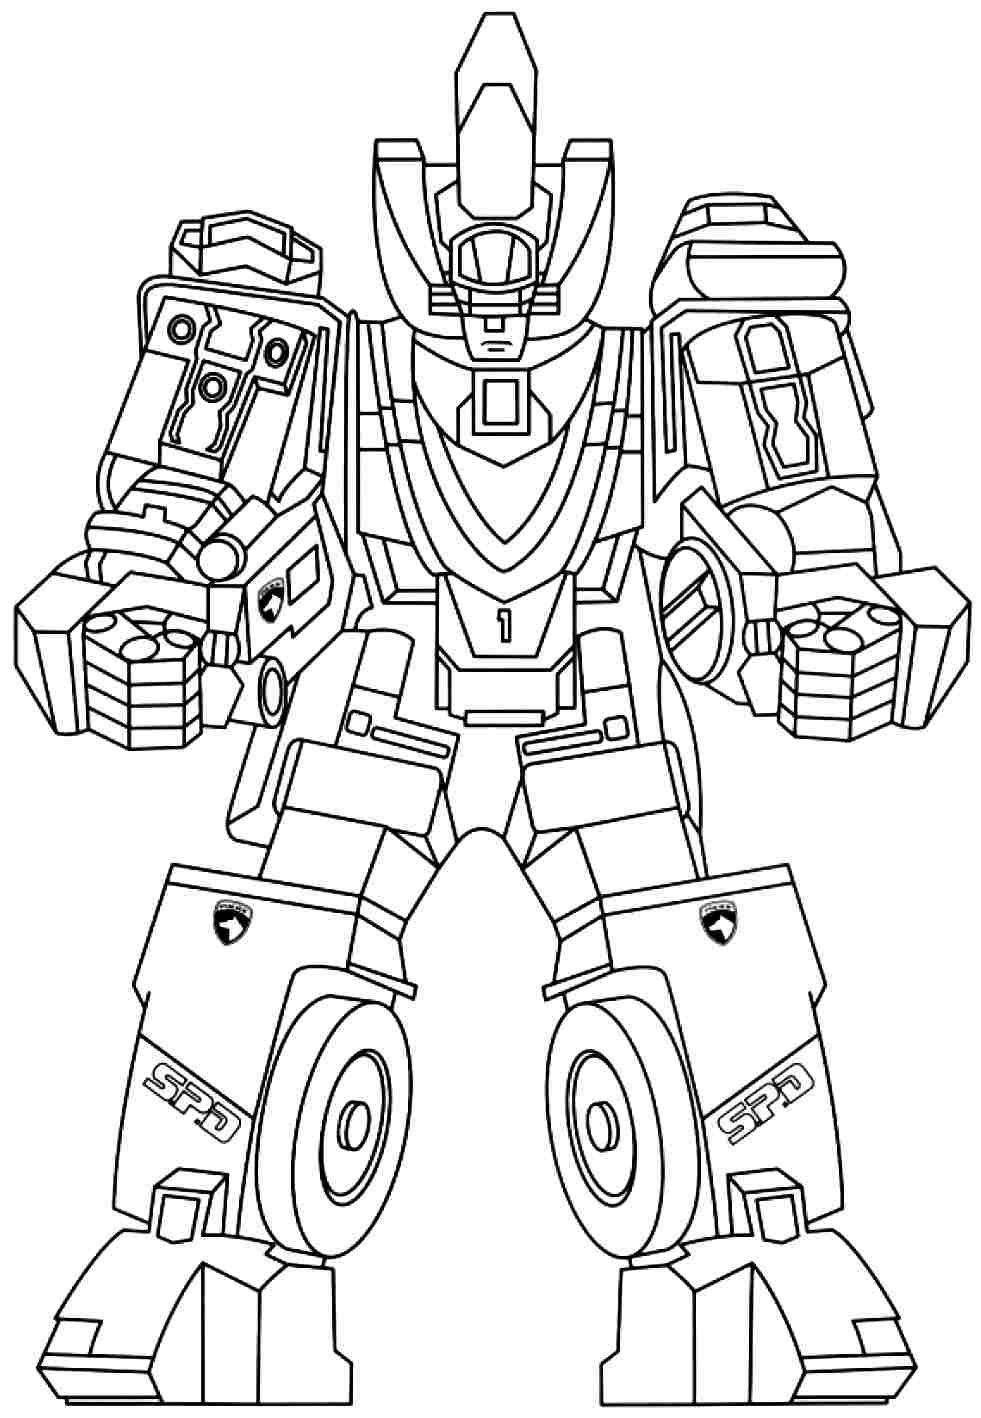 Print Full Size Image Power Rangers Colouring Pages Free For Kids